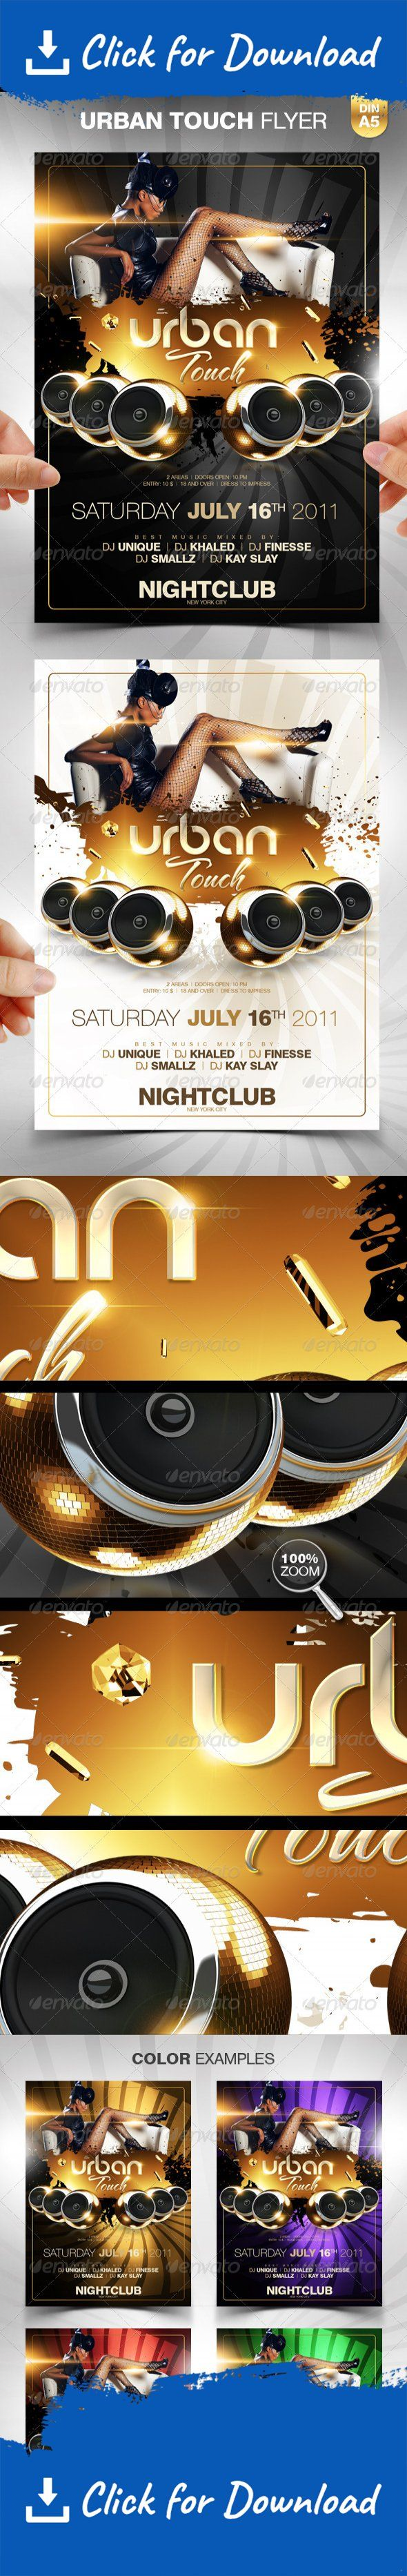 """club, crazy, dirty, disco, dj, event, event poster, frame, glamorous, glitter, glossy, gold, grunge, hip hop, light, music, night, nightclub, party, party flyer, people, rnb, sexy, shiny, speaker, stylish, urban, woman """"Urban Touch"""" party flyer template for a urban mainstream music event or any other nightclub event. The design has a nice mix of urban and glamour style. Hope you like it.   You get 2 x DIN A5 Flyer A black version and a white version.   You can modify everything very e..."""